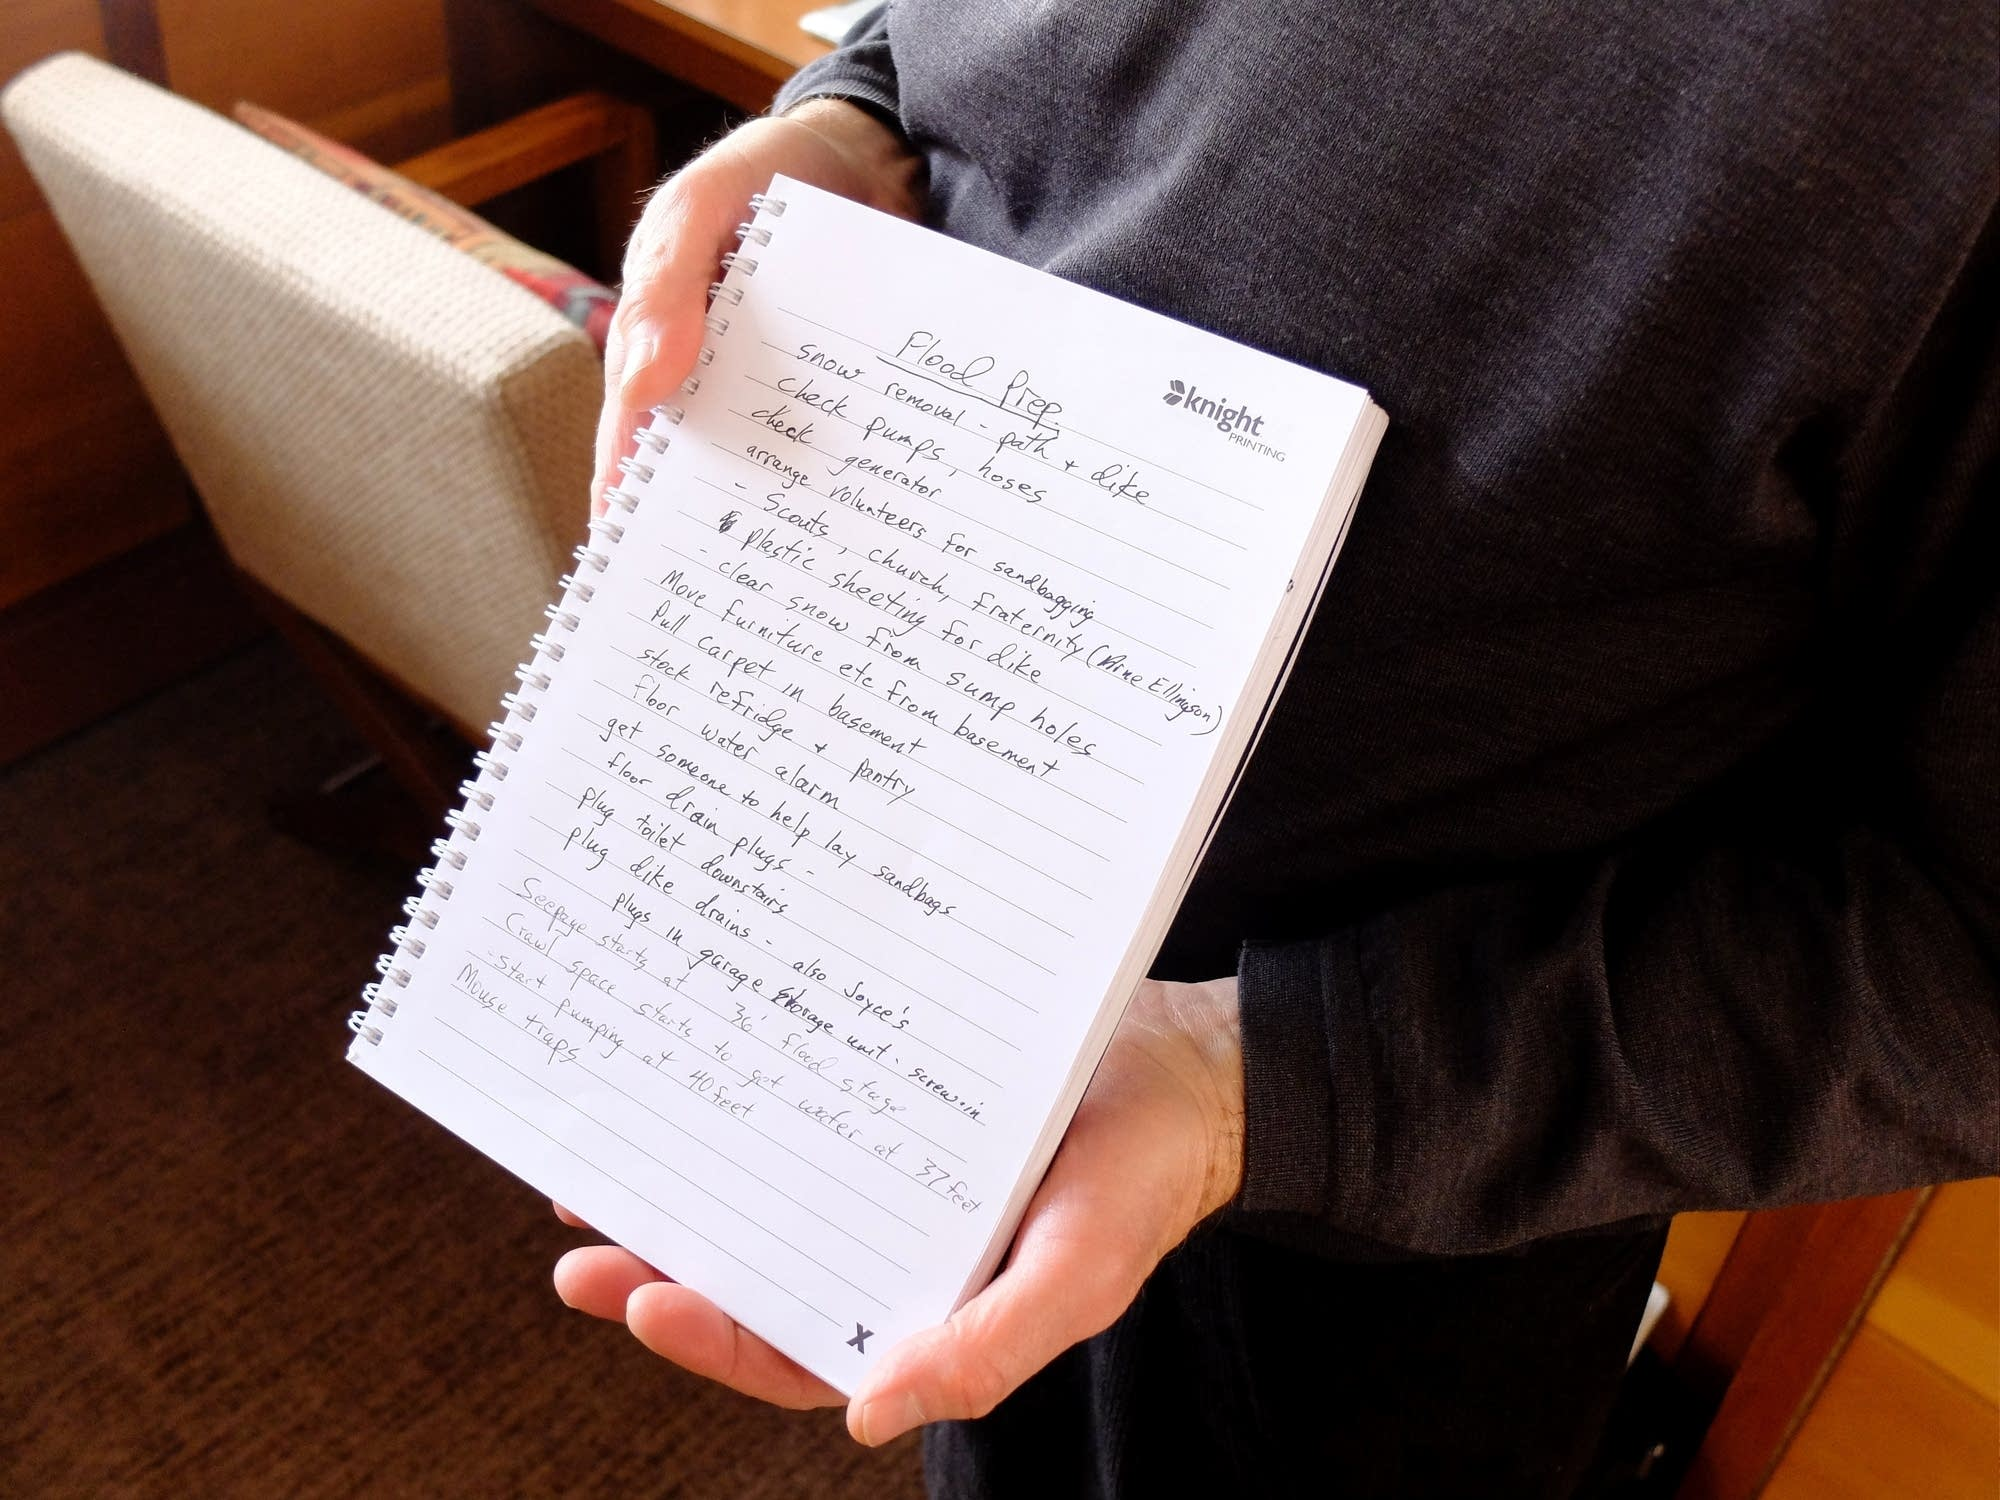 Fargo resident John Stern made a list of all the tasks.